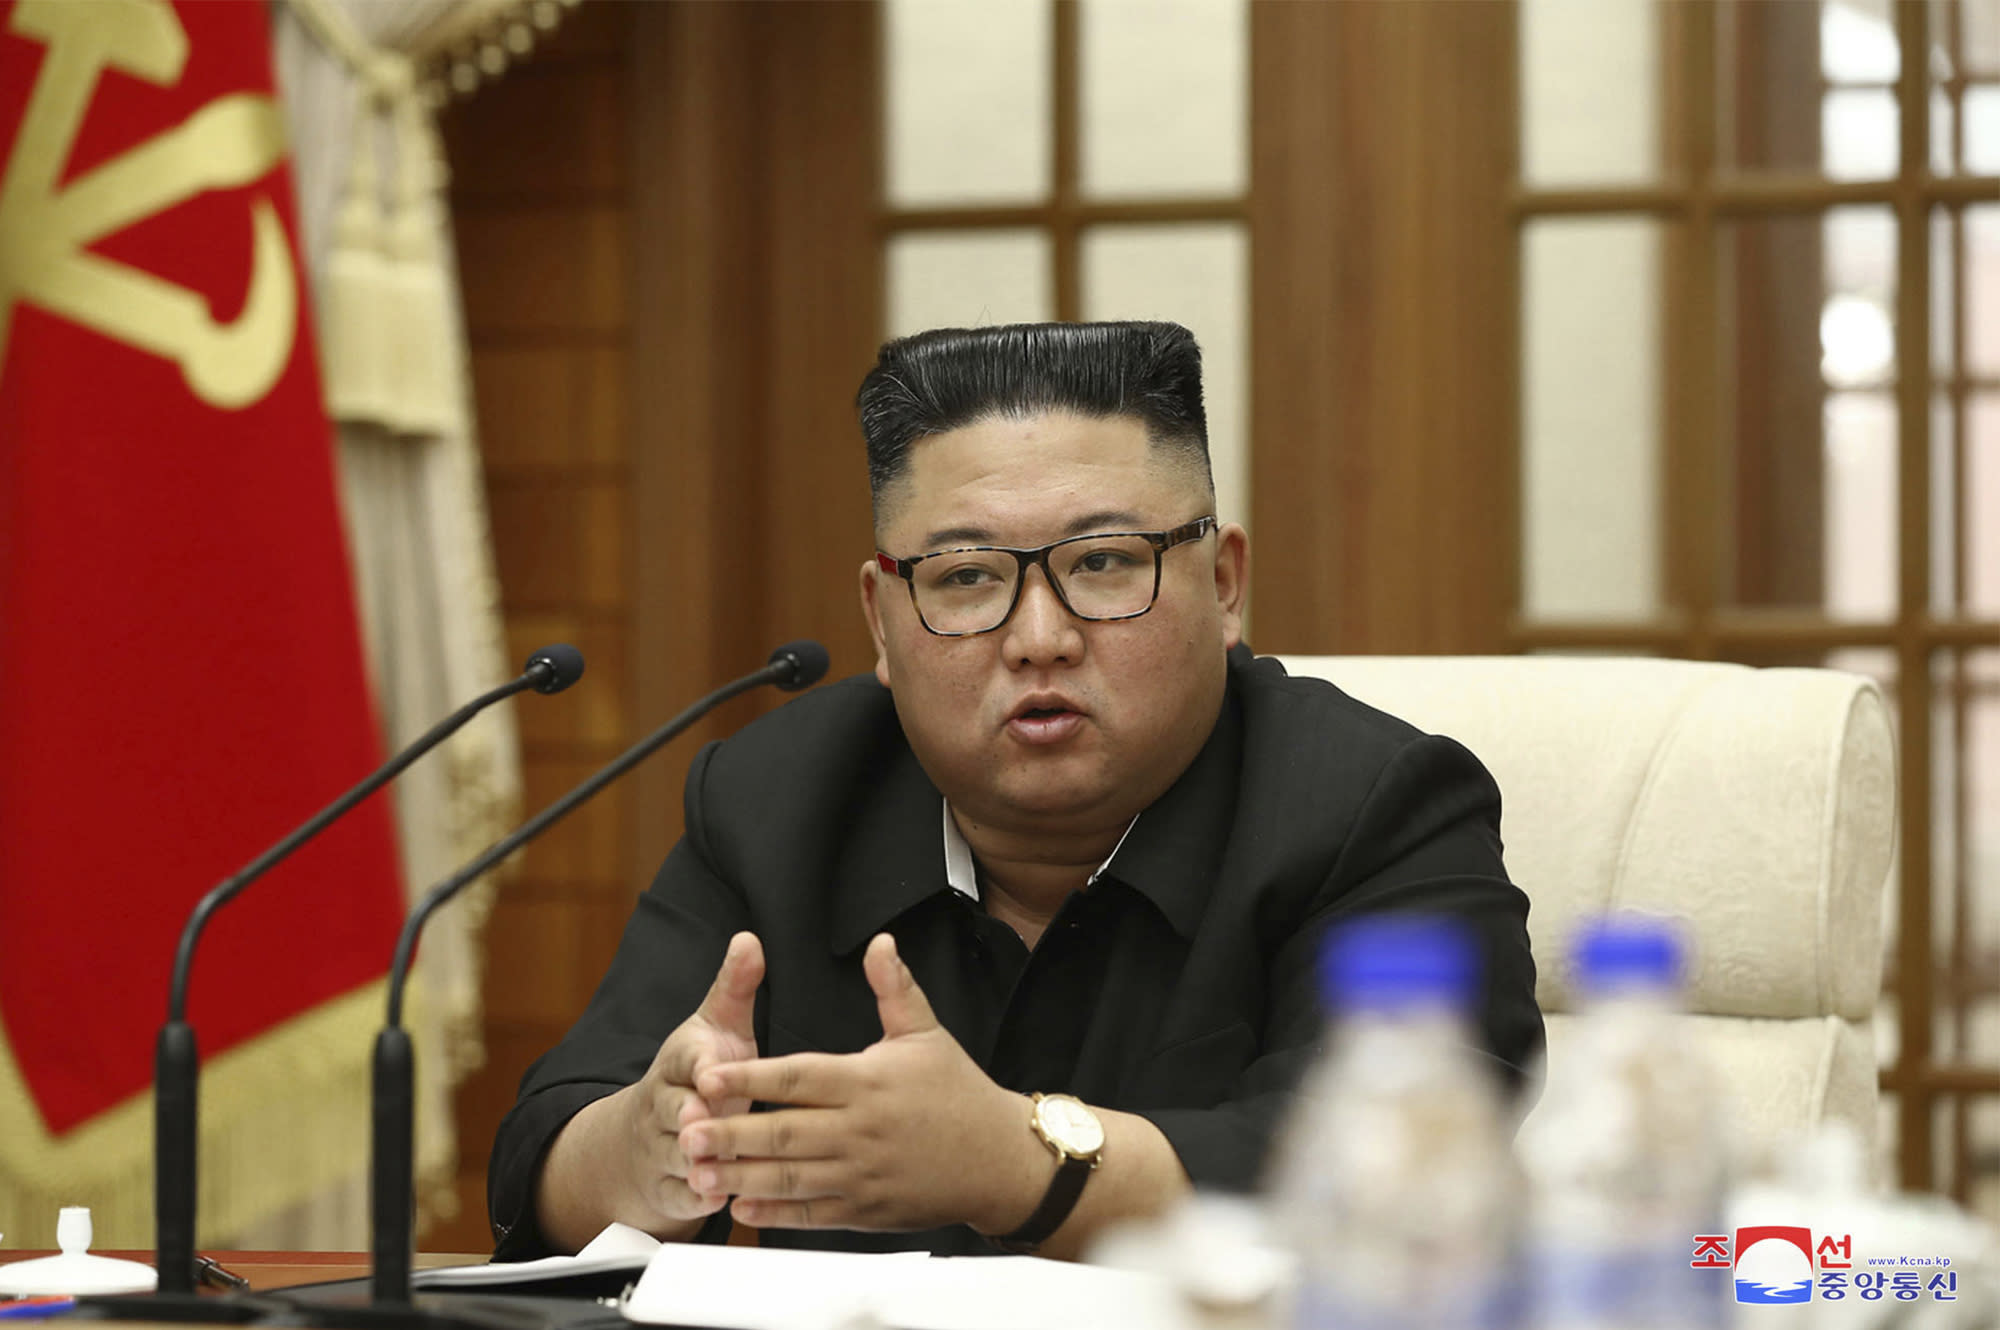 """In this photo provided Wednesday, Sept. 30, 2020, by the North Korean government, North Korean leader Kim Jong Un attends the 18th meeting of Political Bureau of 7th Central Committee of the Workers' Party of Korea in Pyongyang, Tuesday, Sept. 29, 2020. Independent journalists were not given access to cover the event depicted in this image distributed by the North Korean government. The content of this image is as provided and cannot be independently verified. Korean language watermark on image as provided by source reads: """"KCNA"""" which is the abbreviation for Korean Central News Agency. (Korean Central News Agency/Korea News Service via AP)"""